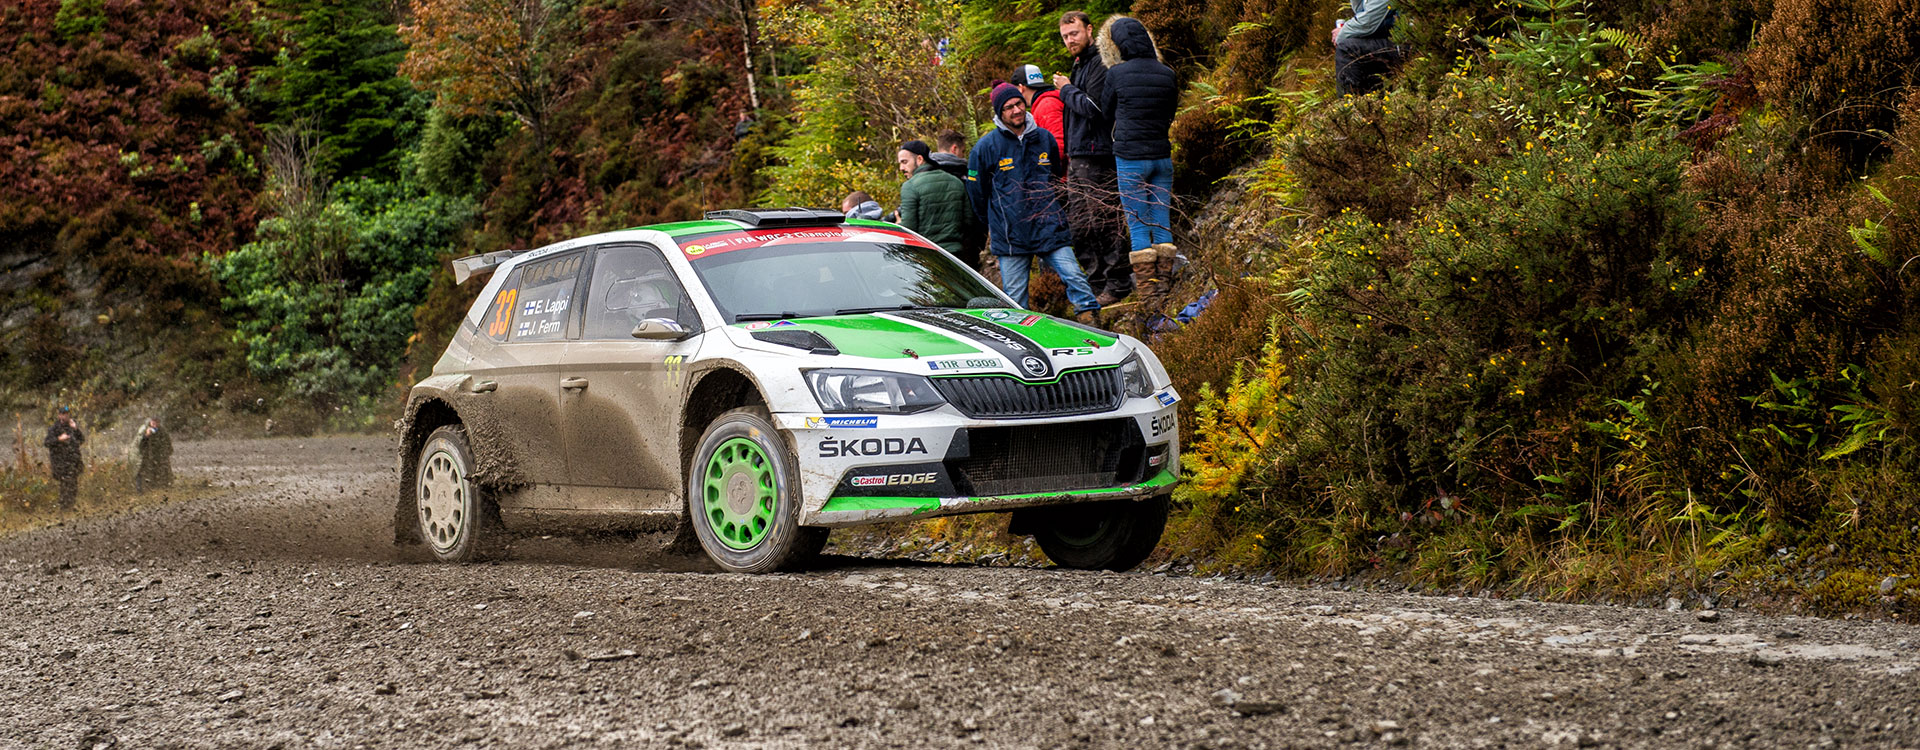 WRC Great Britain: ŠKODA works driver Lappi defends his overall lead